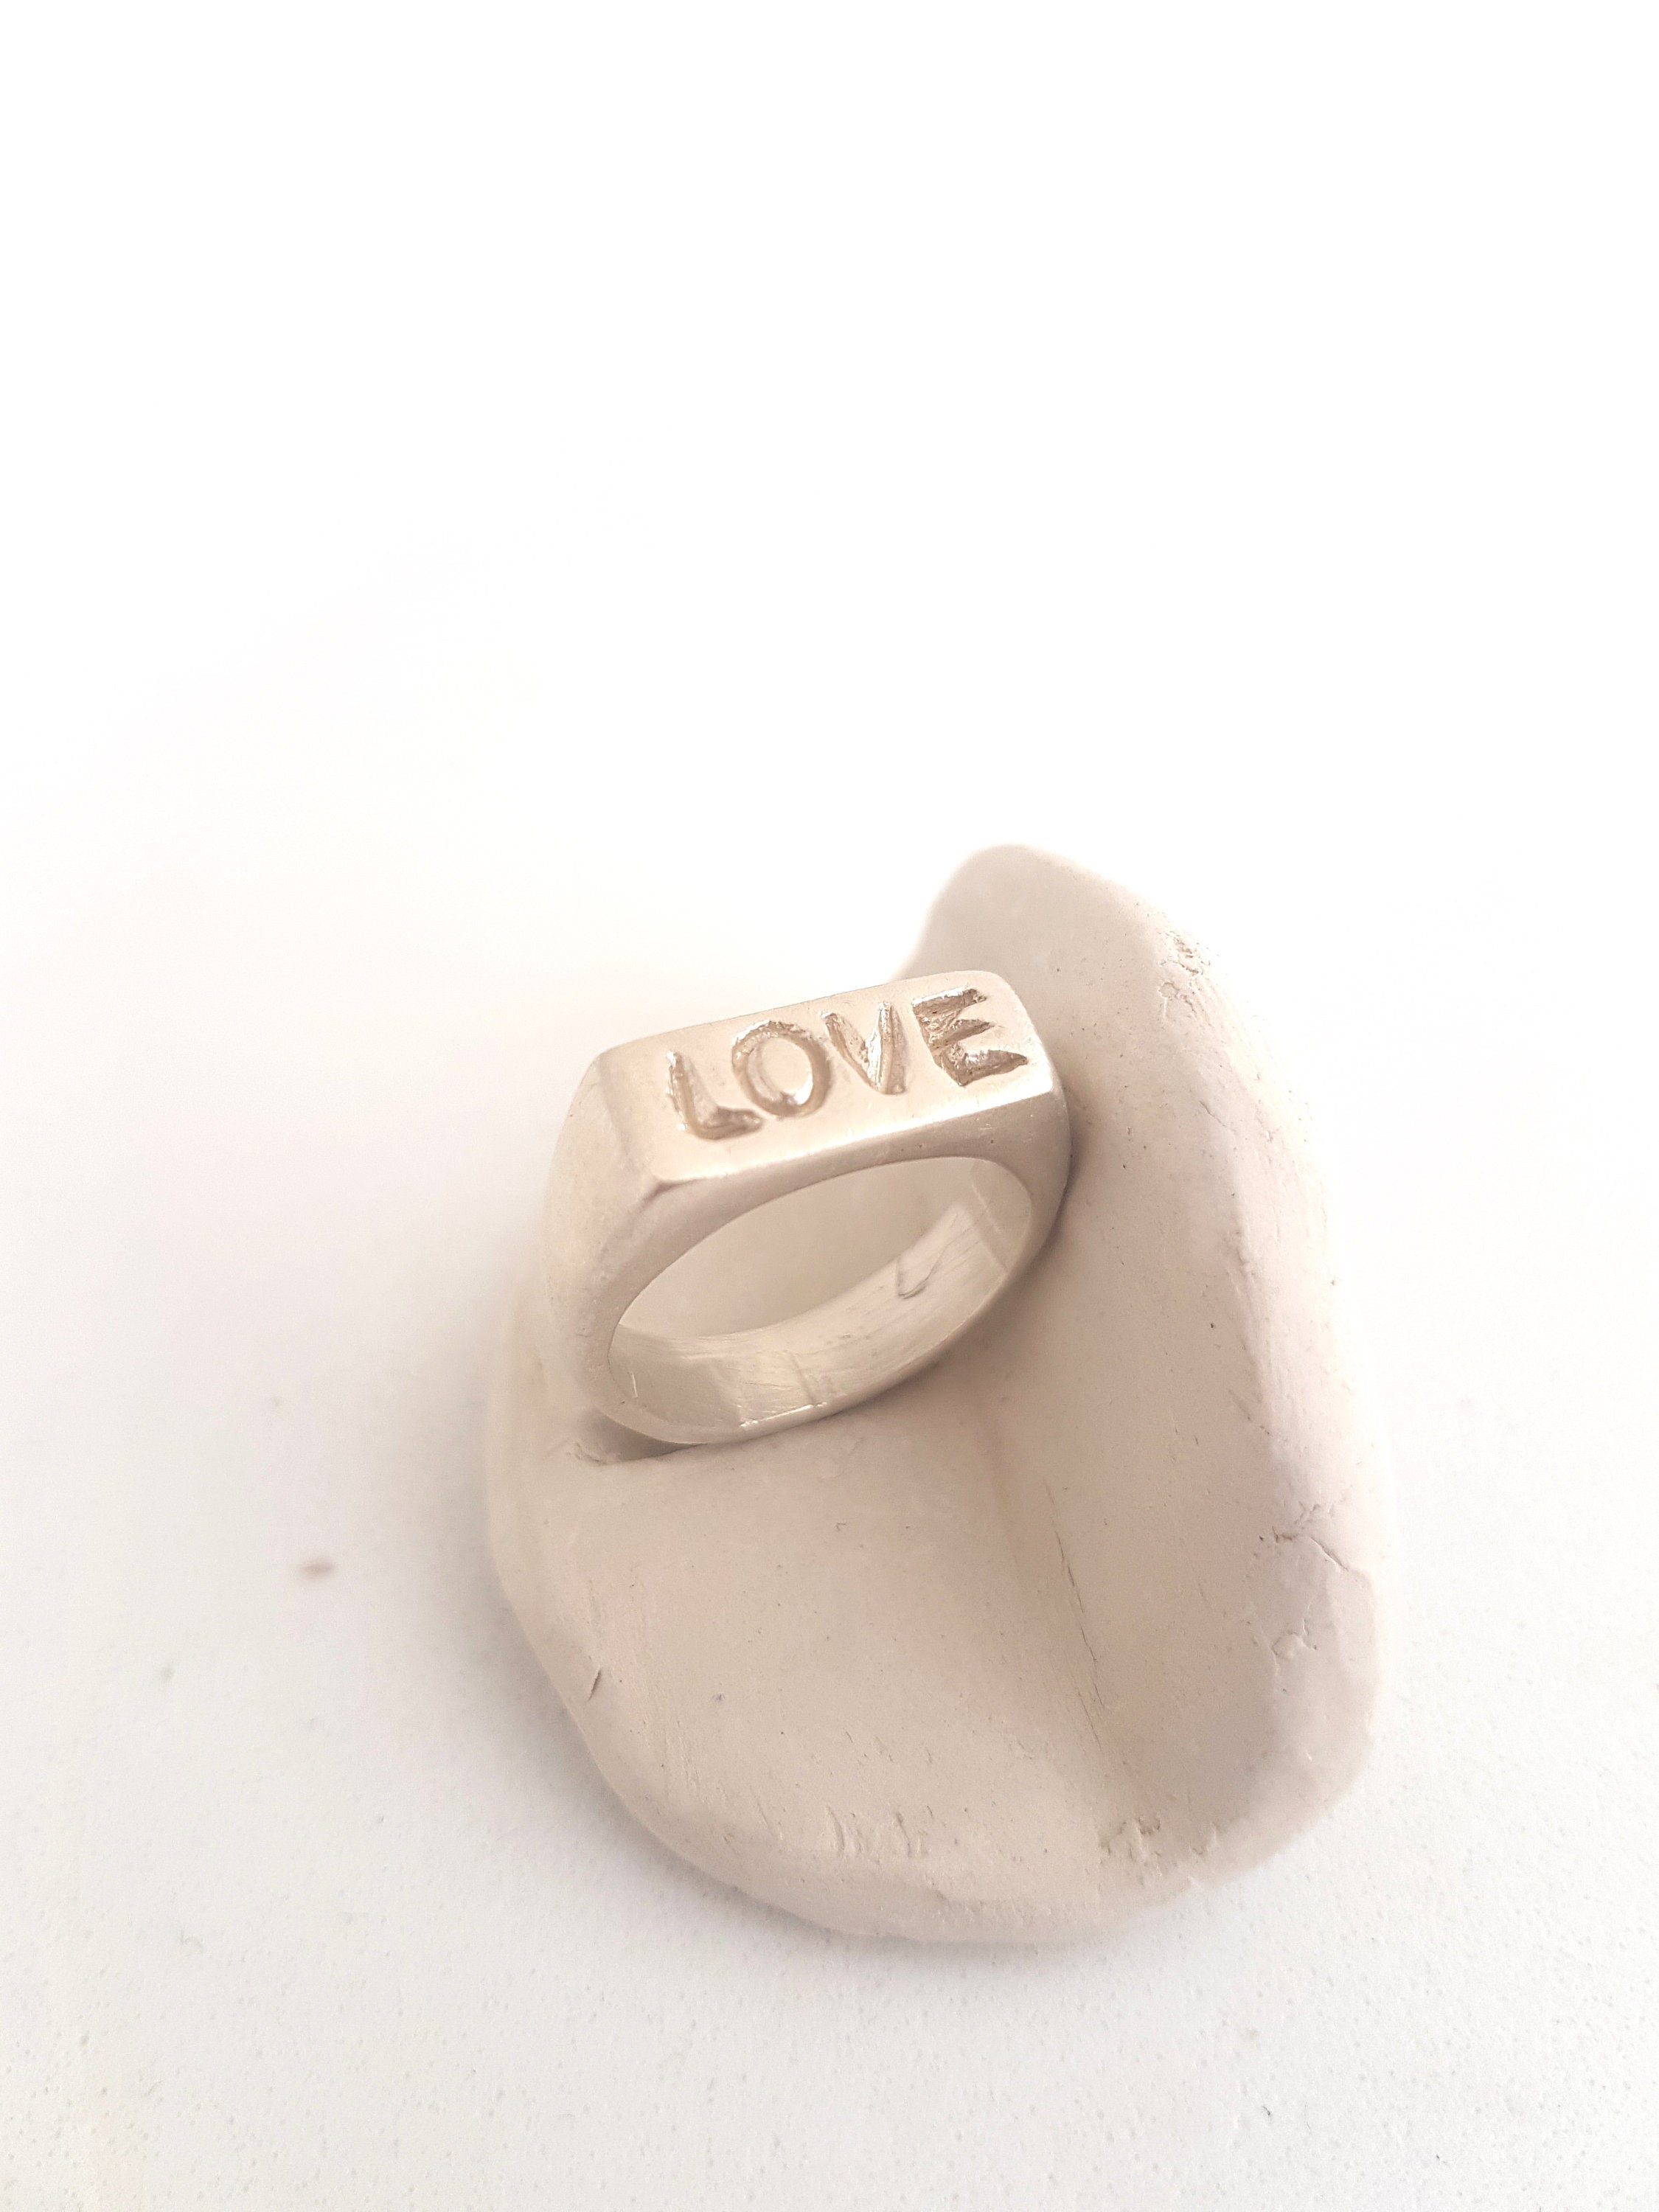 Love signet ring, solid sterling silver signet ring hand sculpted.